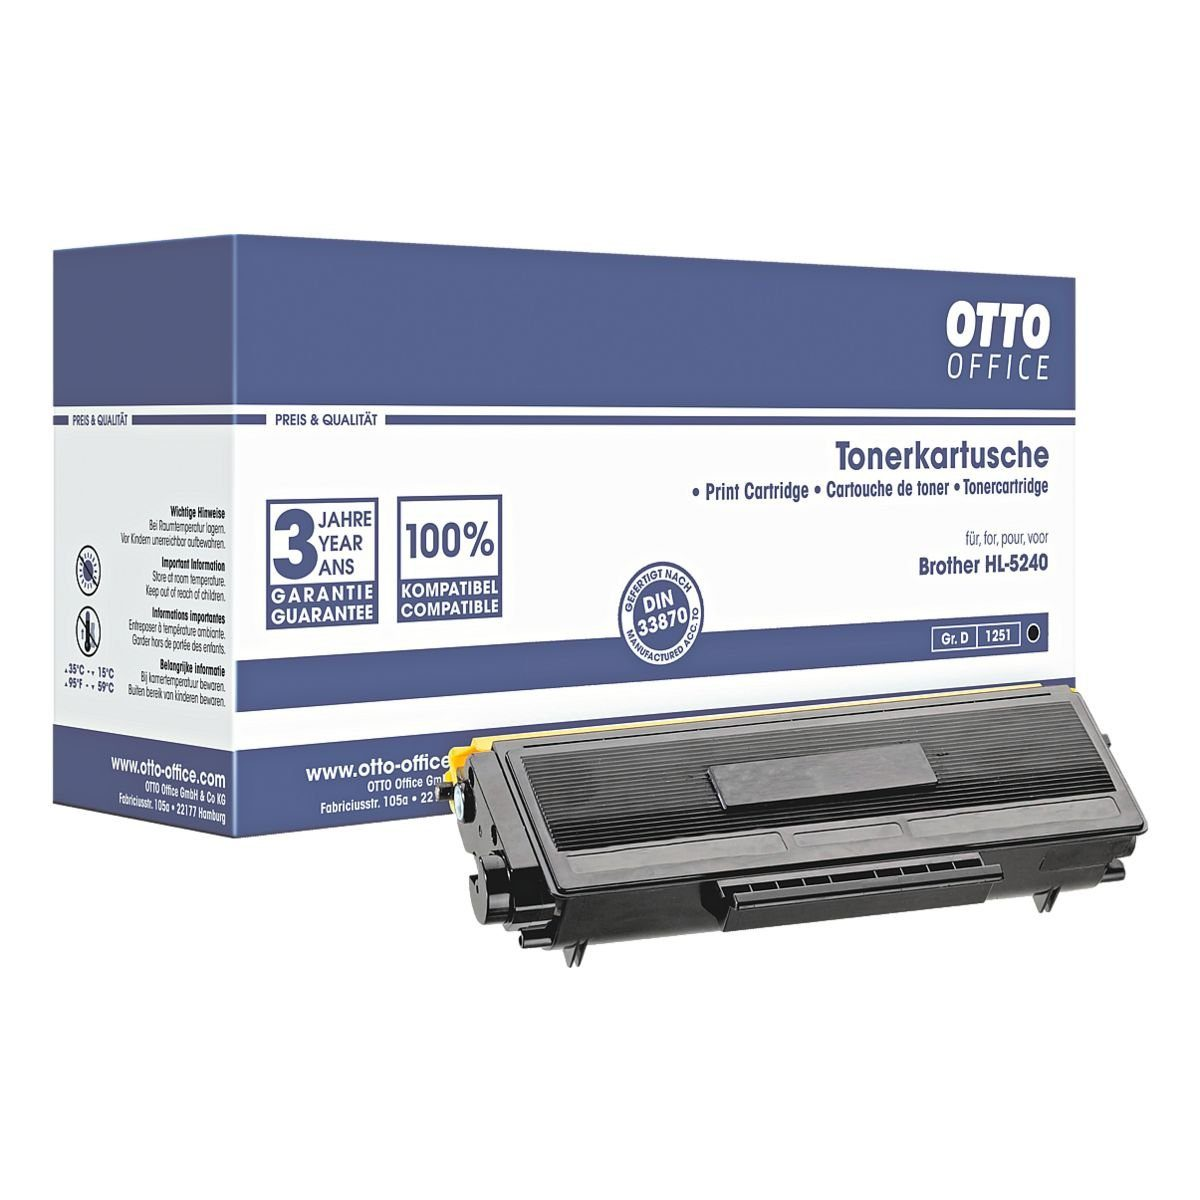 OTTO Office Standard Toner ersetzt Brother »TN-3130«